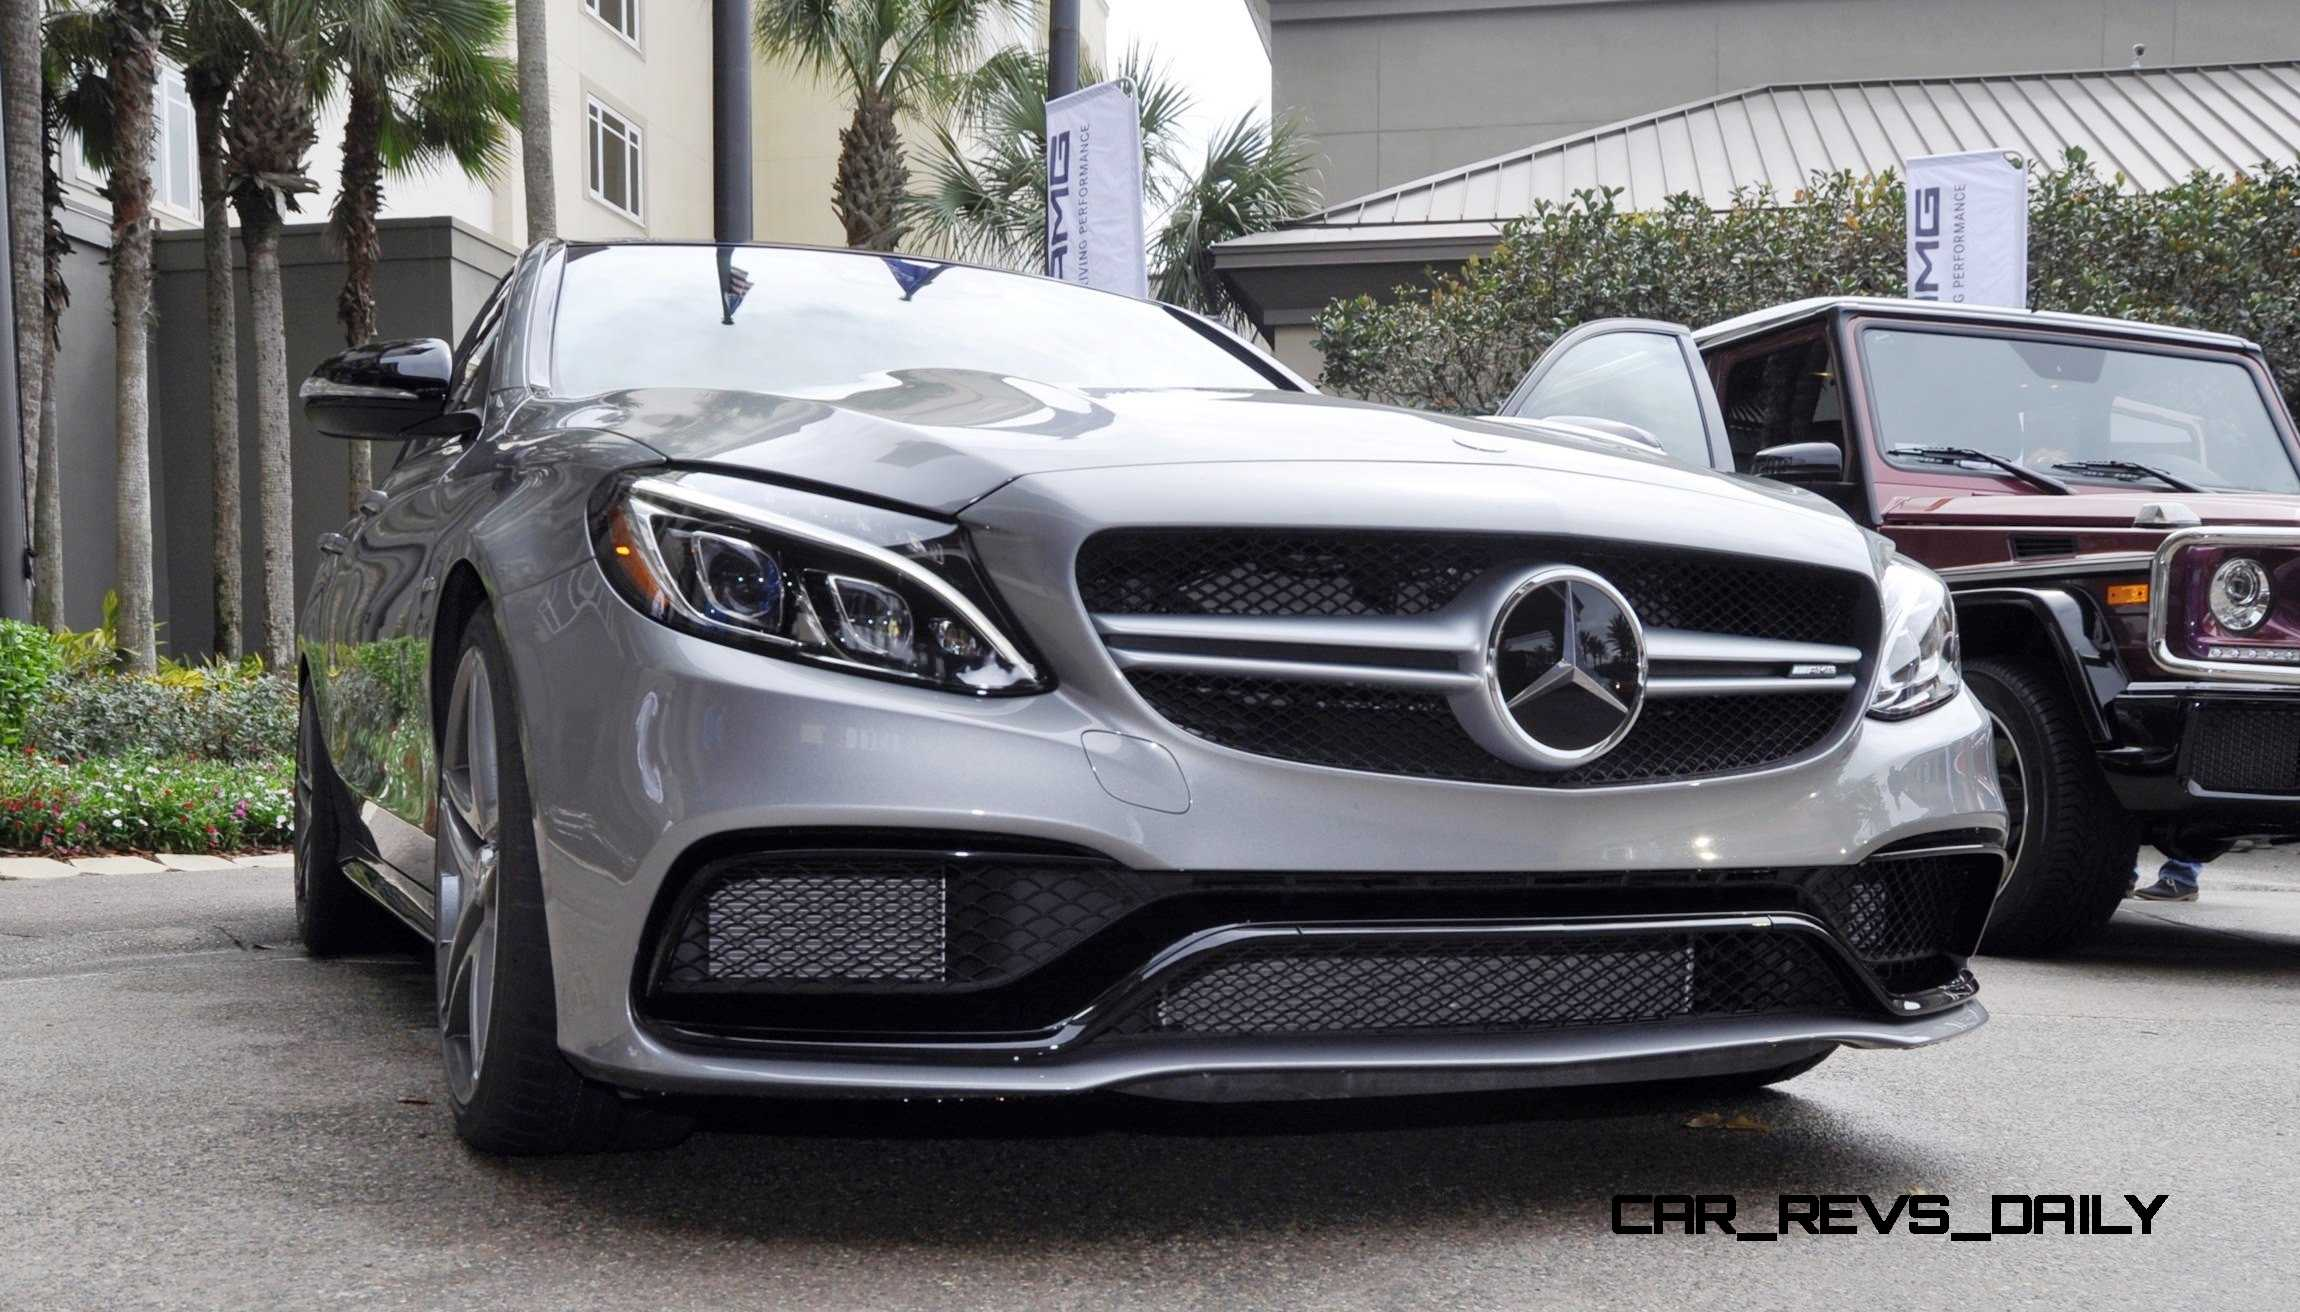 Big Fin Diffuser for a Mercedes W204 C63 AMG | Welcome to ...